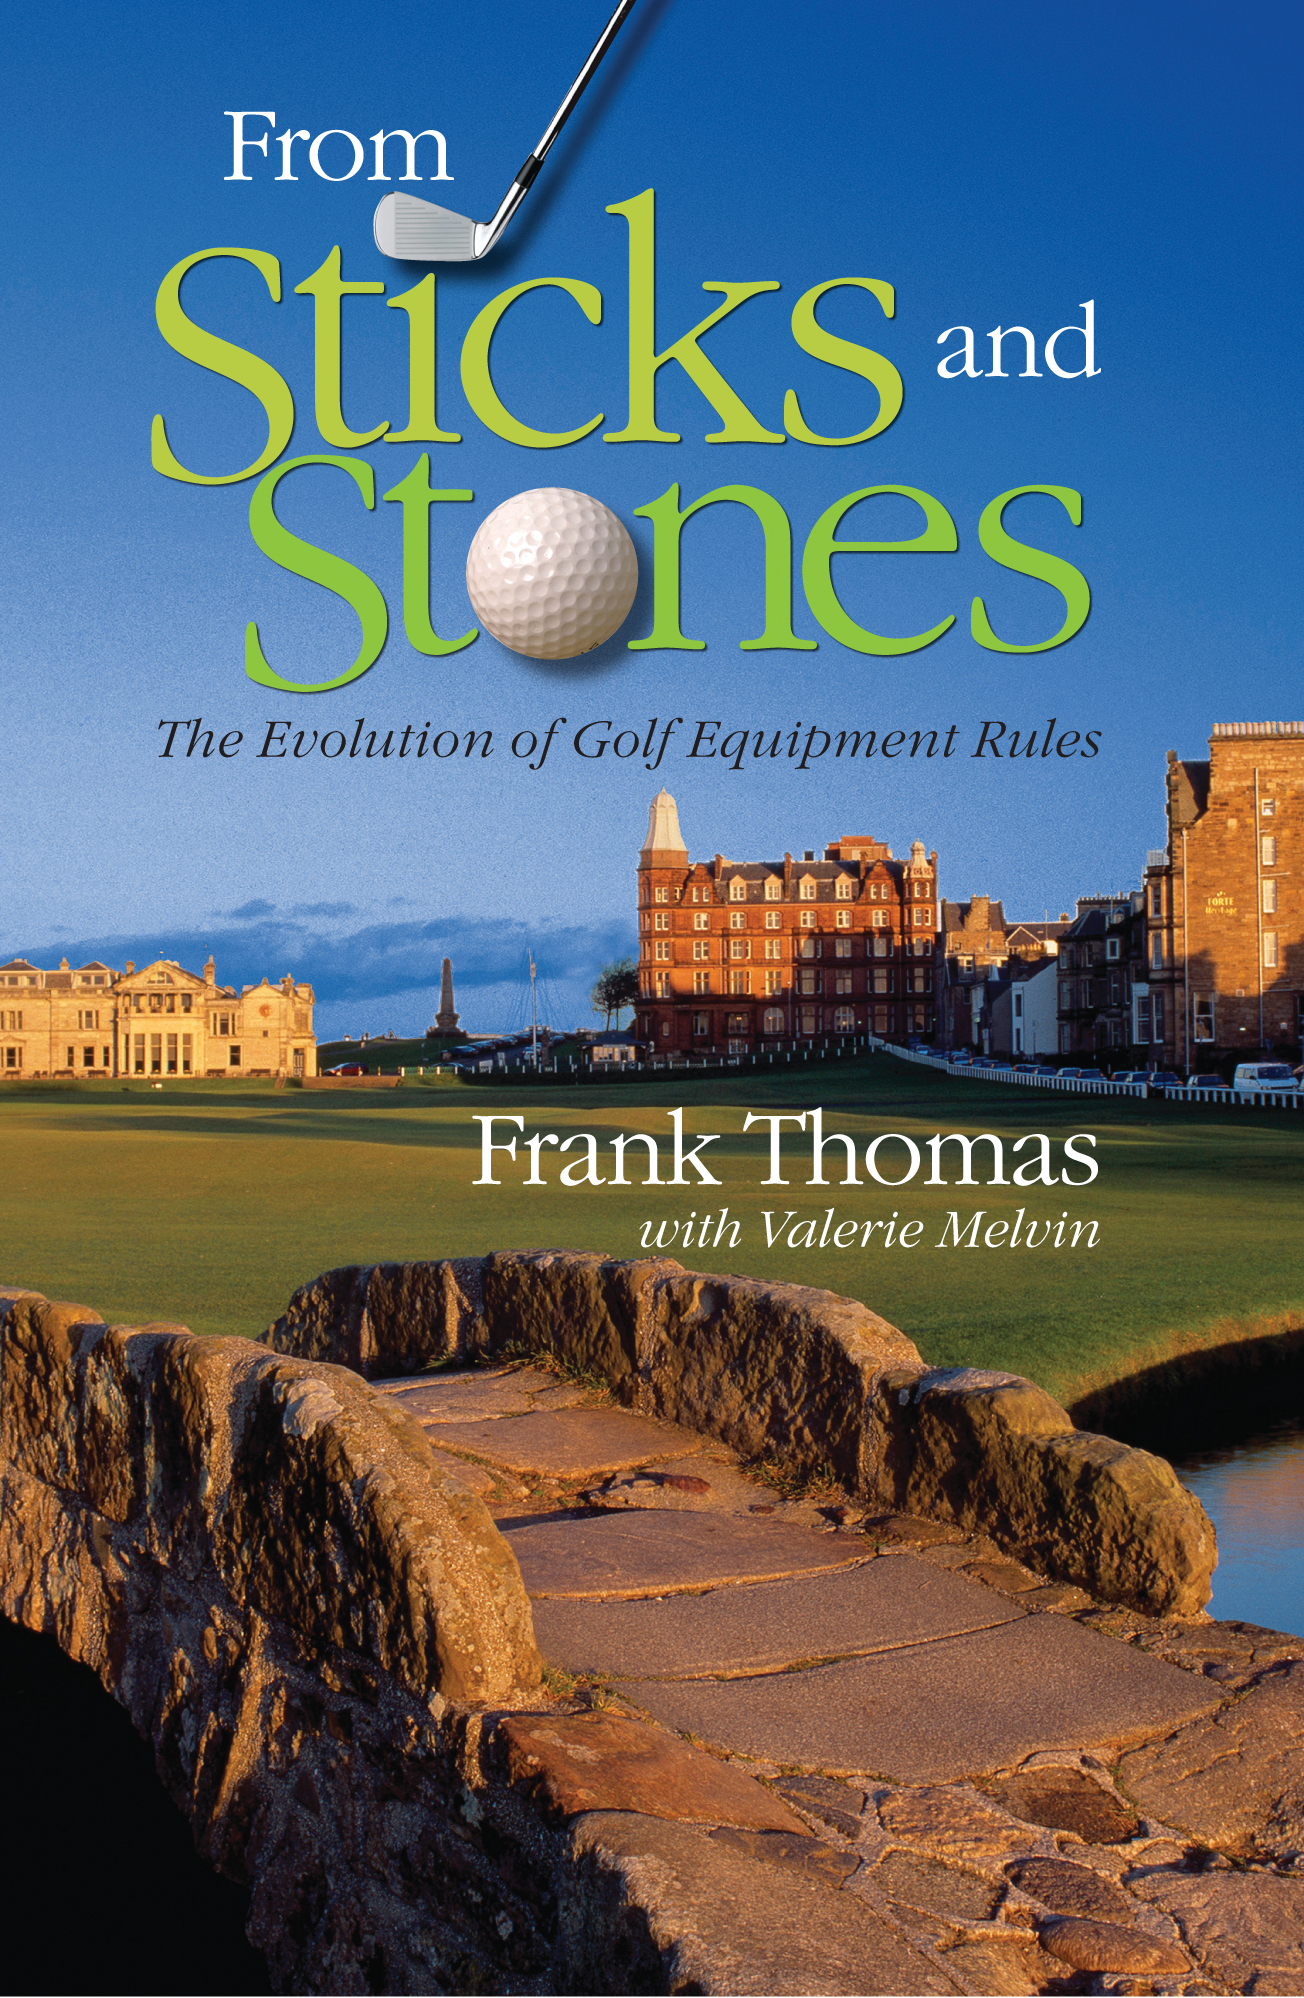 'From Sticks and Stones: The Evolution of Golf Equipment Rules'